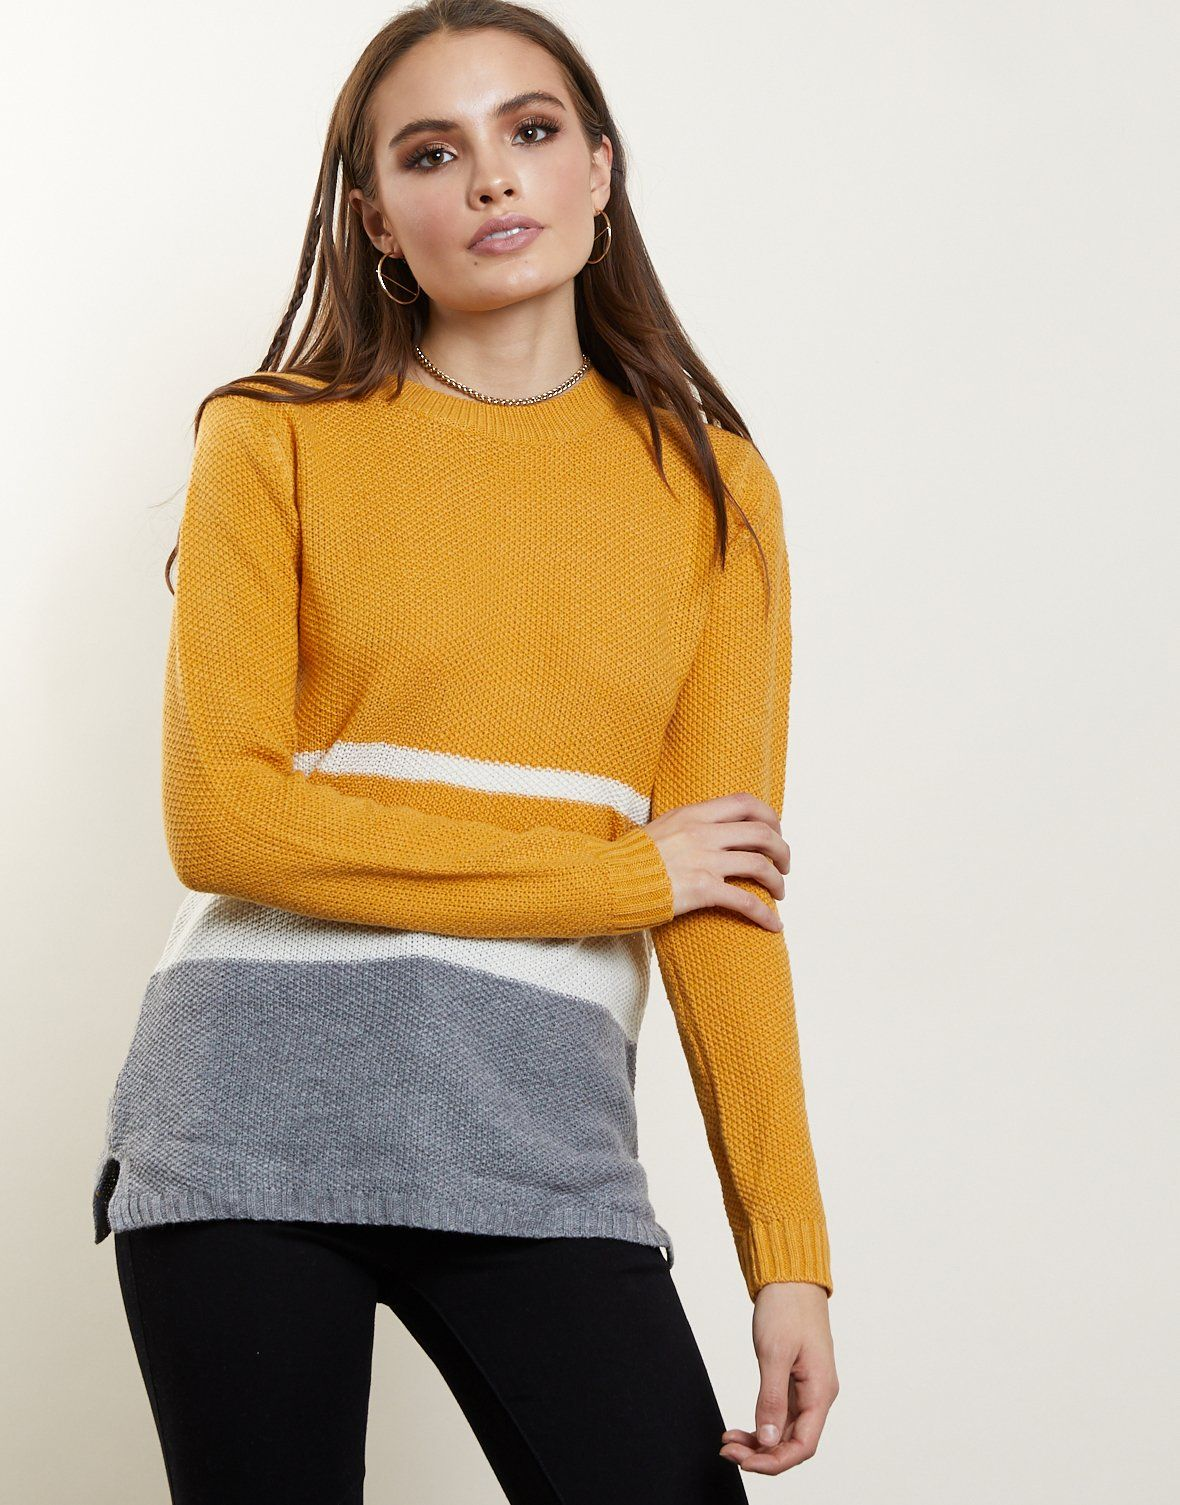 12c261a36c Aria Colorblock Sweater - Pastel Colorblock Sweater – 2020AVE yellow  colorblock top